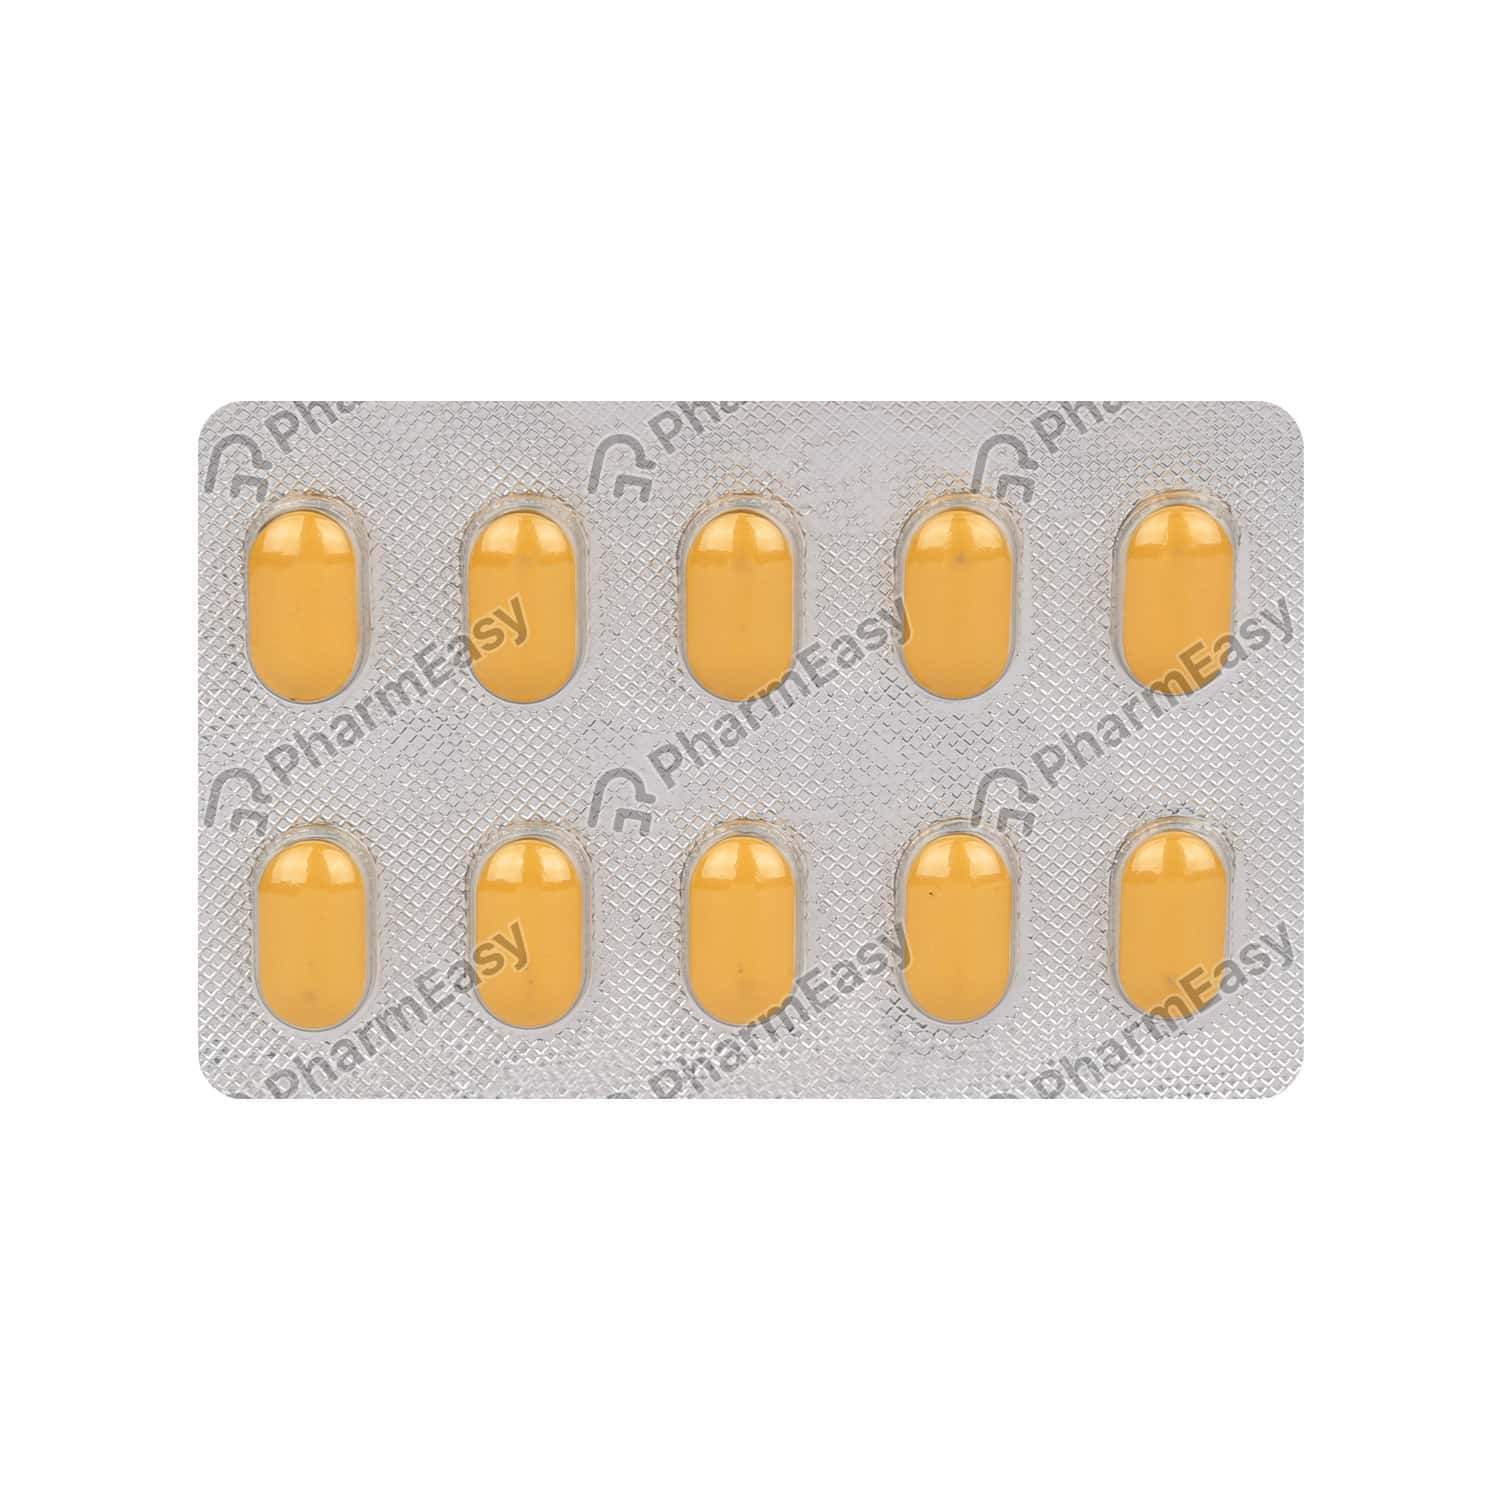 Selzic 300mg Strip Of 10 Tablets